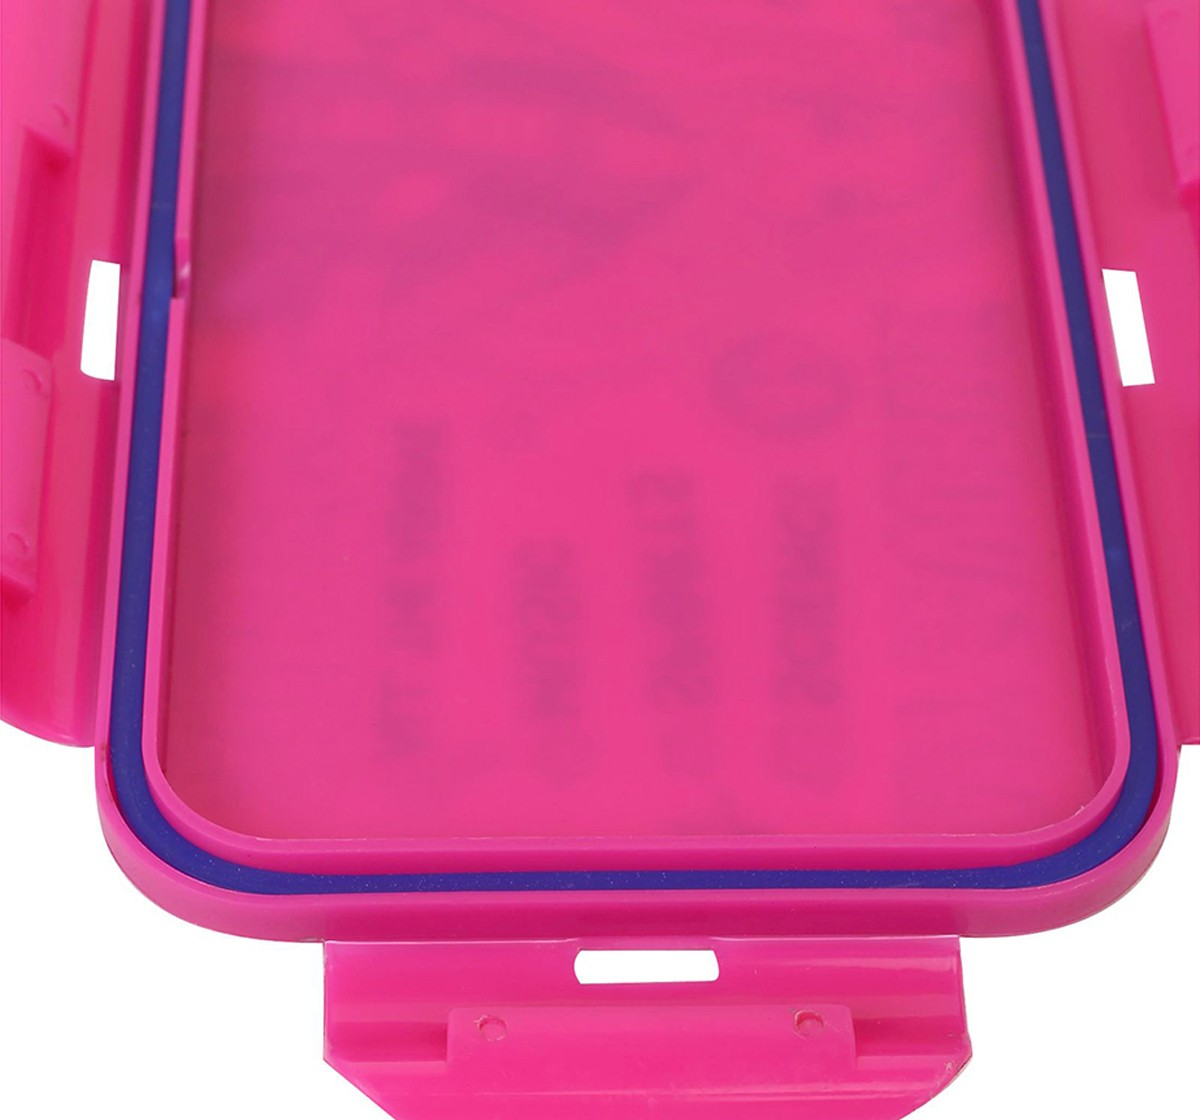 Barbie My Favourite Pink & Blue Lunch Box, 2Y+